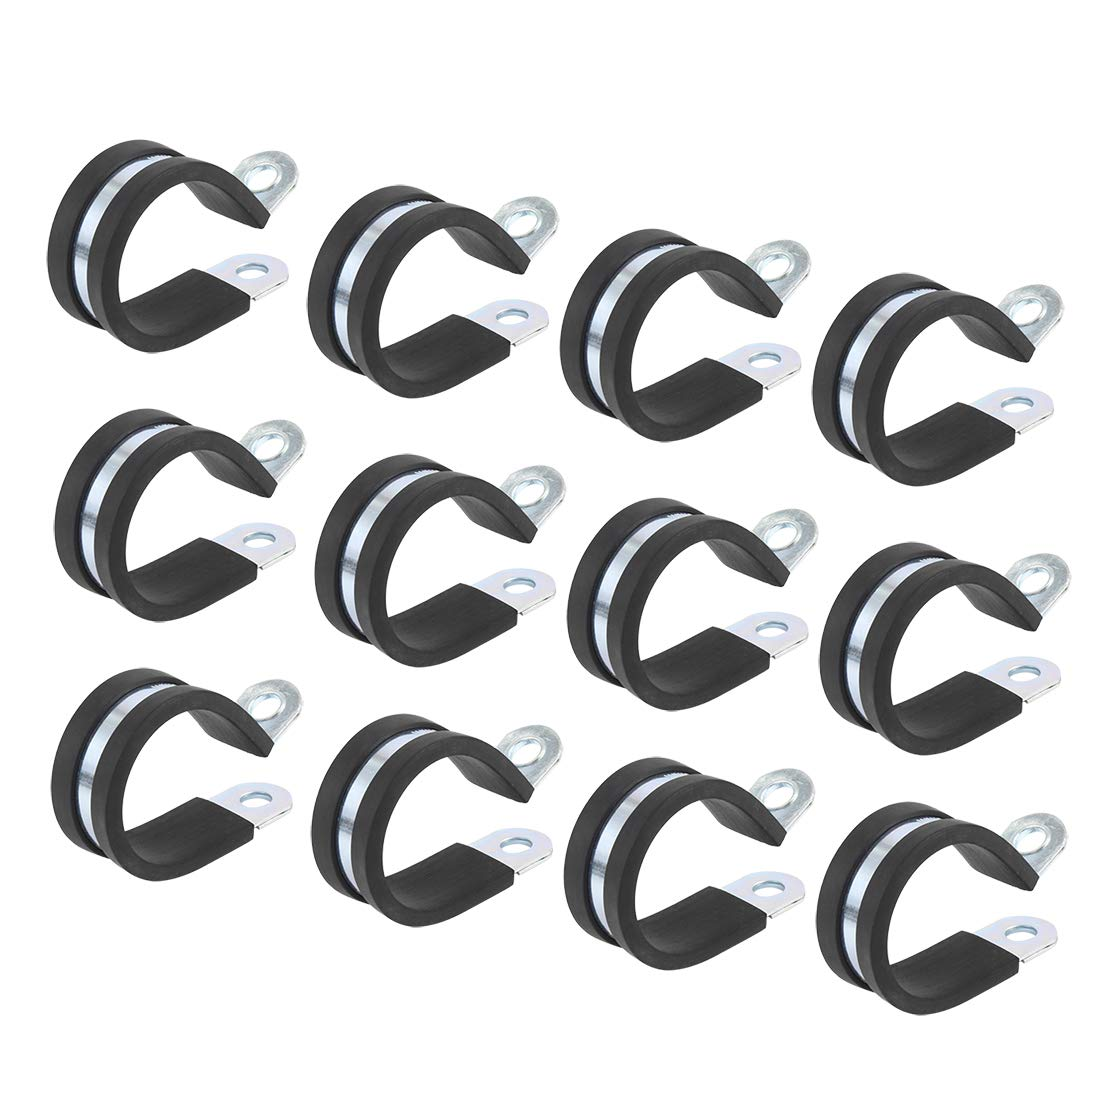 X AUTOHAUX 12pcs 18mm 0.71 Inch R Shape Automotive Stainless Steel Cable Clamp Rubber Cushioned Insulated Clamp Metal Clamp for Tube Pipe Wire Installation